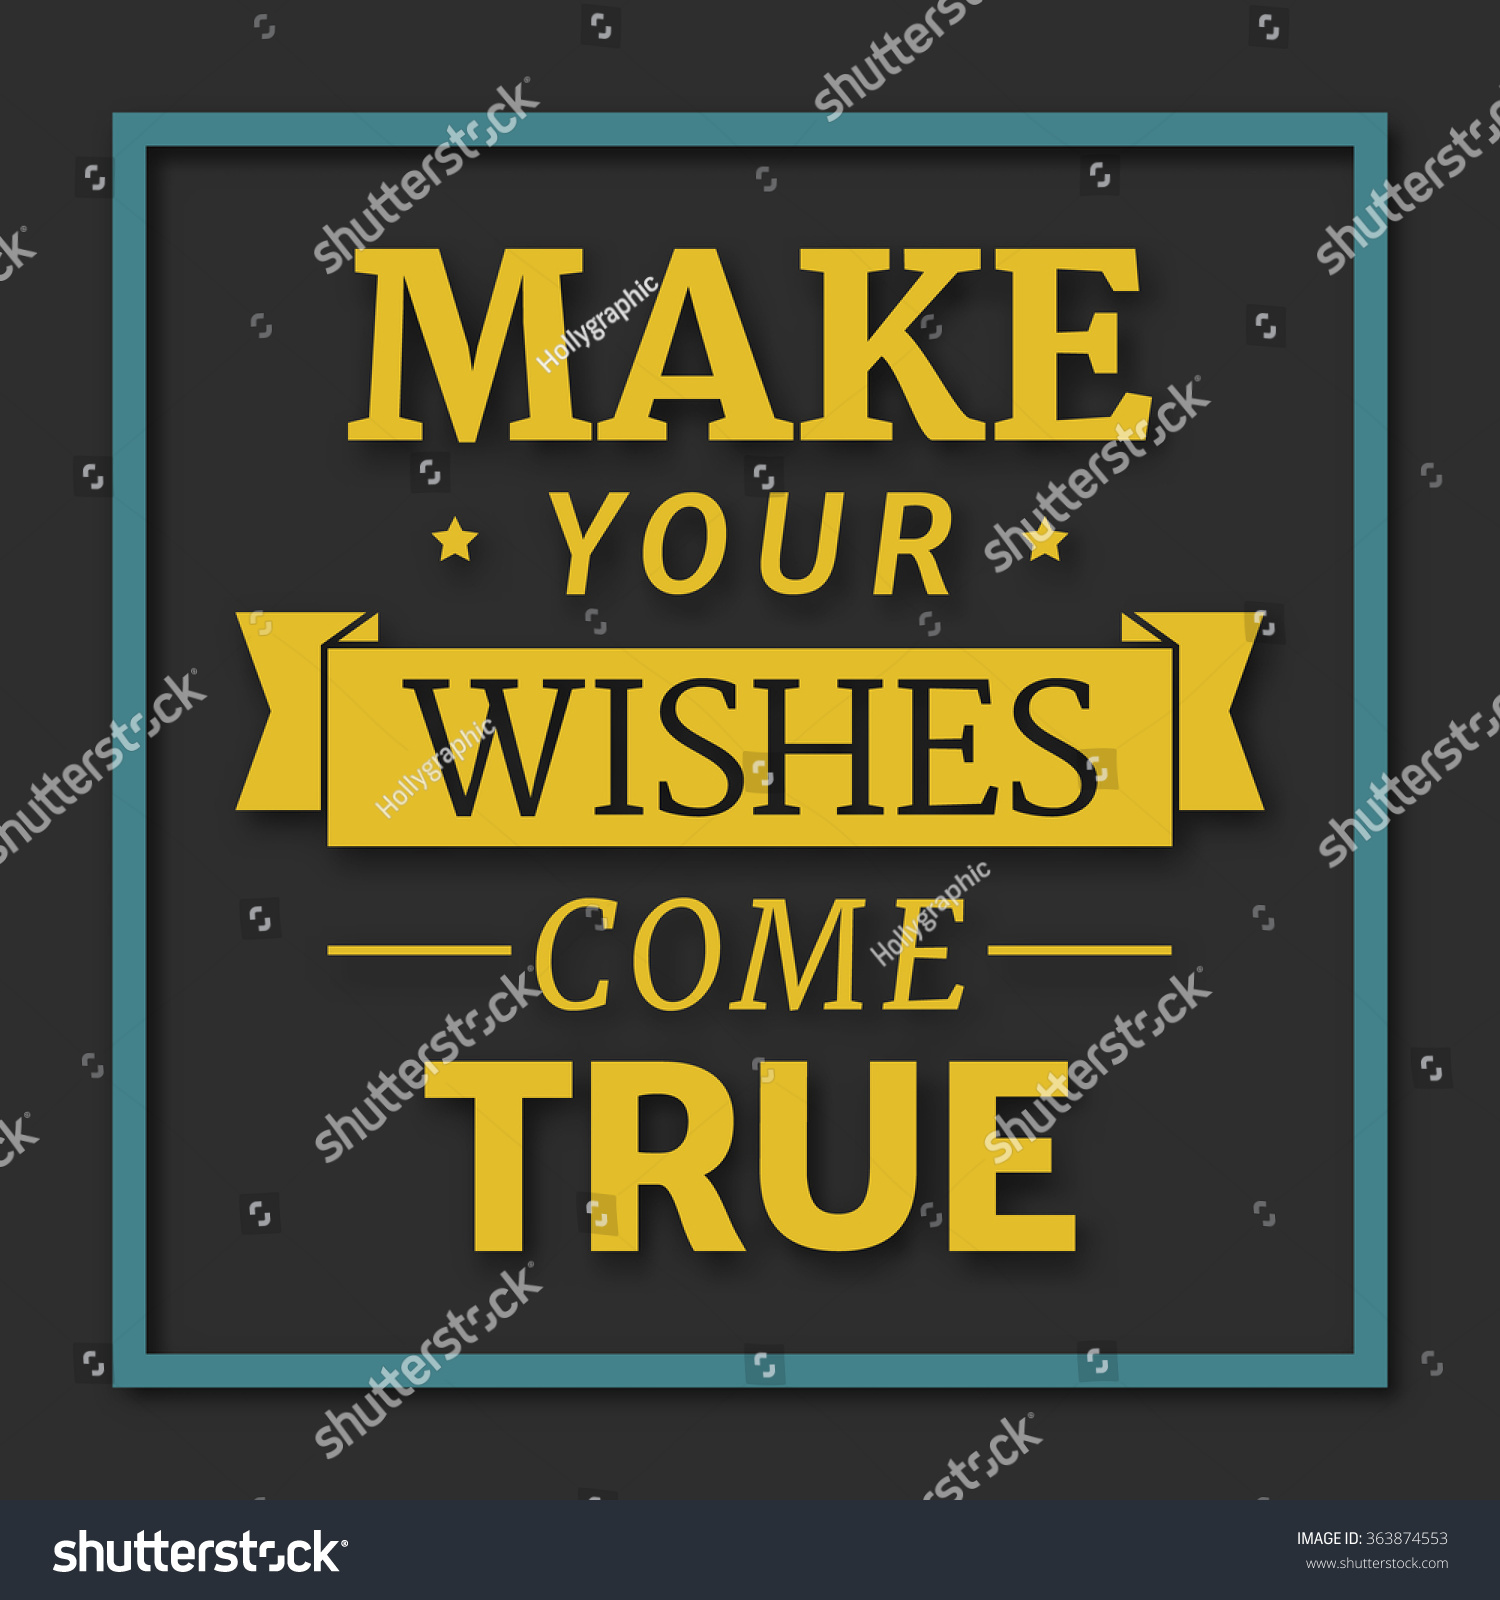 Wishes Do Come True Quotes: Make Your Wishes Come True, Motivational Lettering Quote